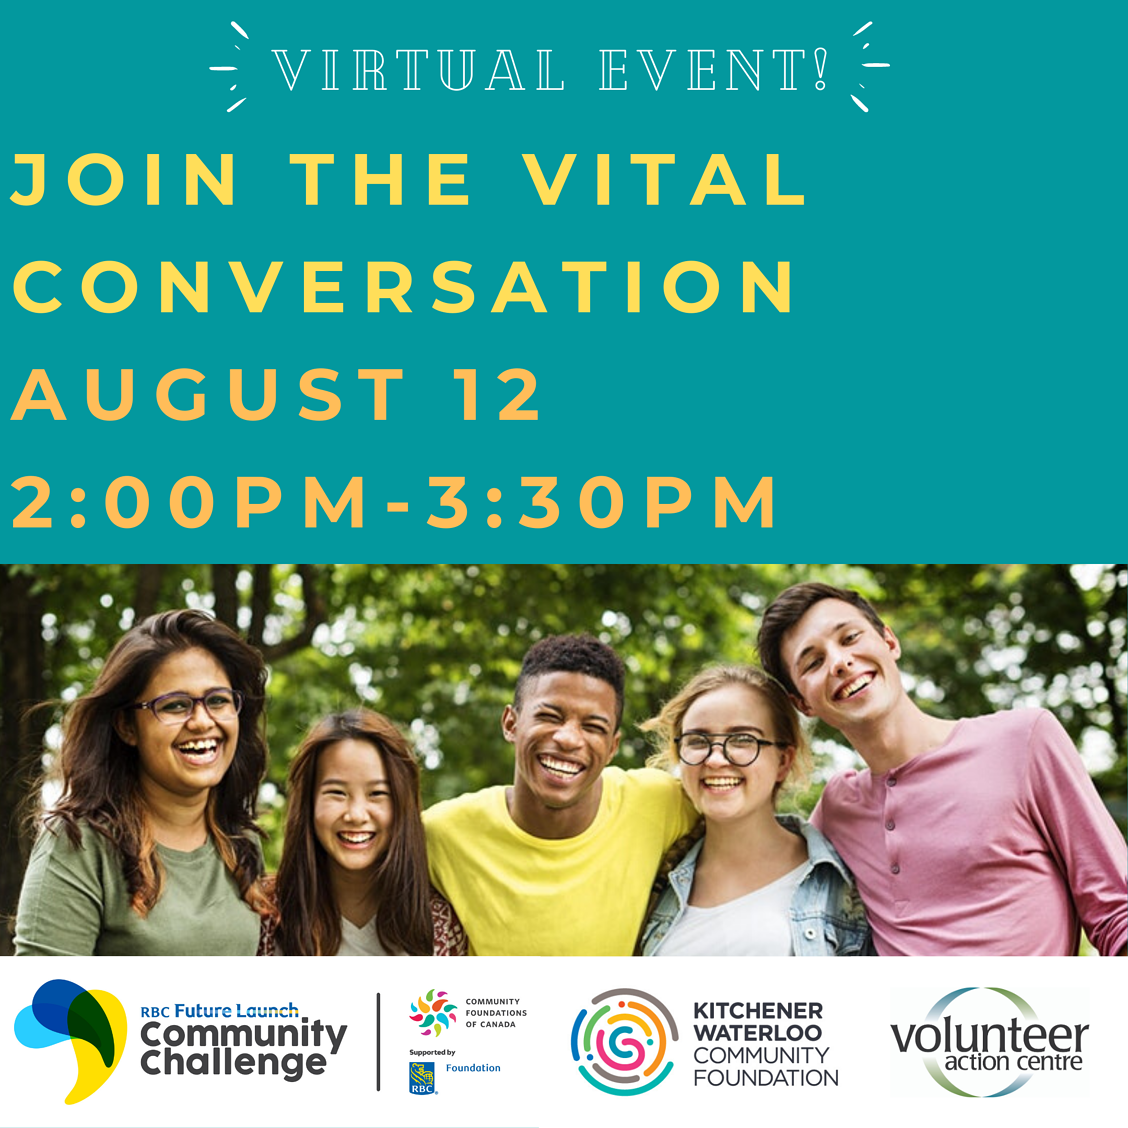 Join the Vital Conversation August 12 2-330pm